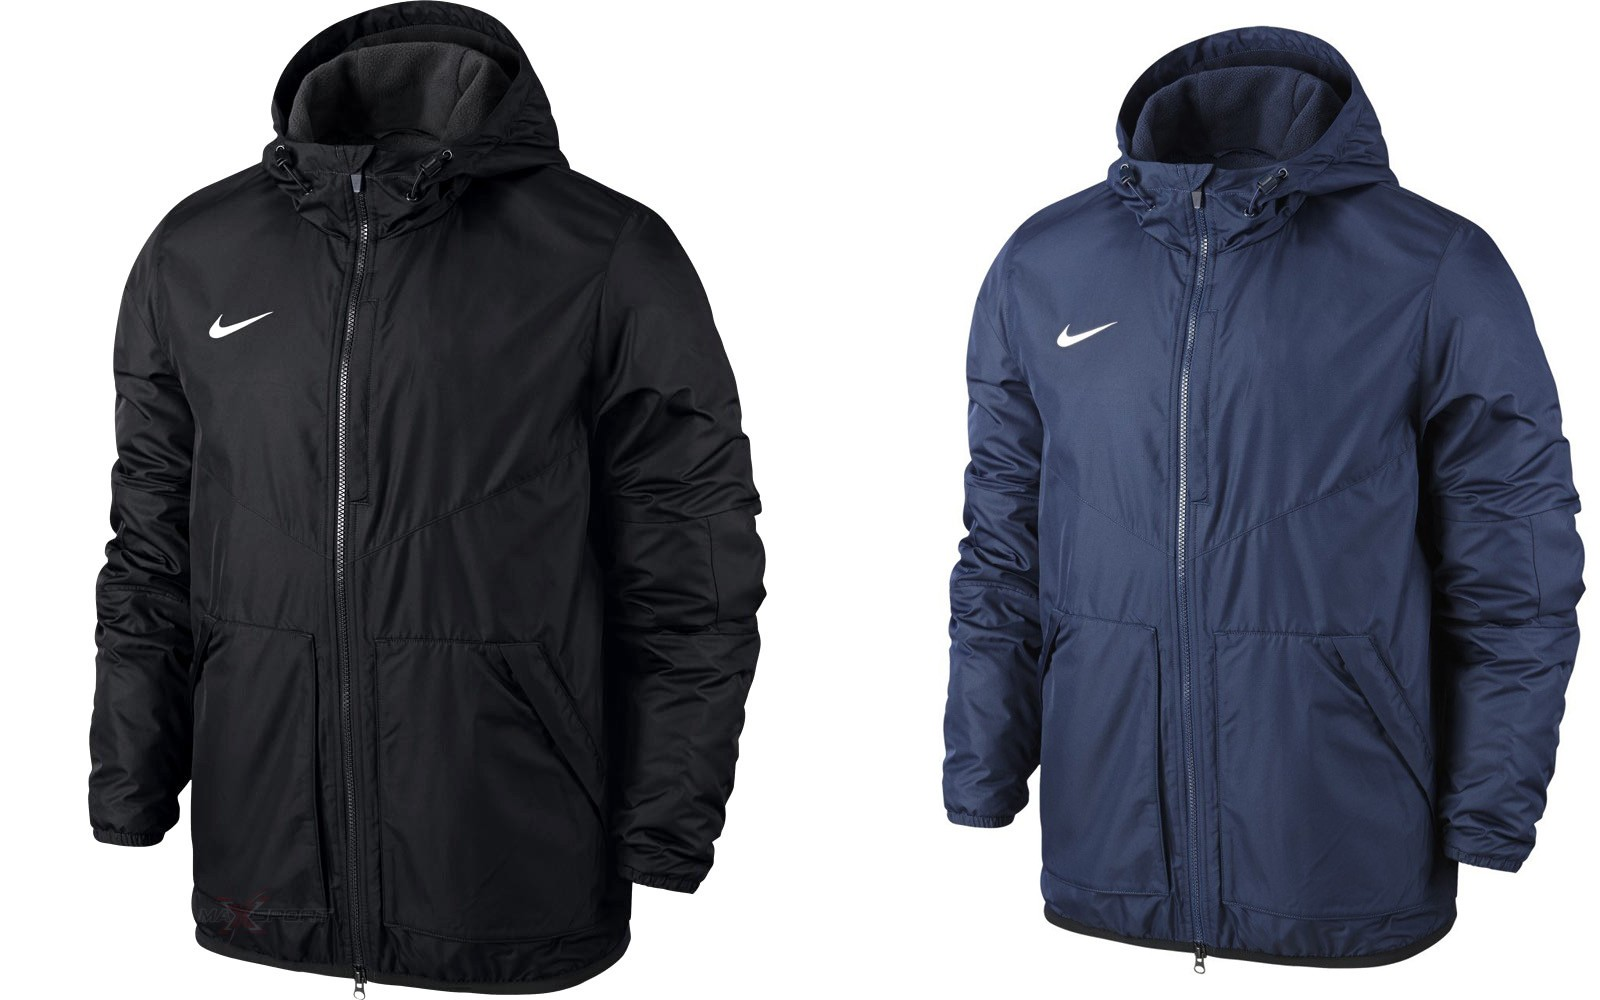 nike winterjacke herren nike free 2 herren nike pro. Black Bedroom Furniture Sets. Home Design Ideas